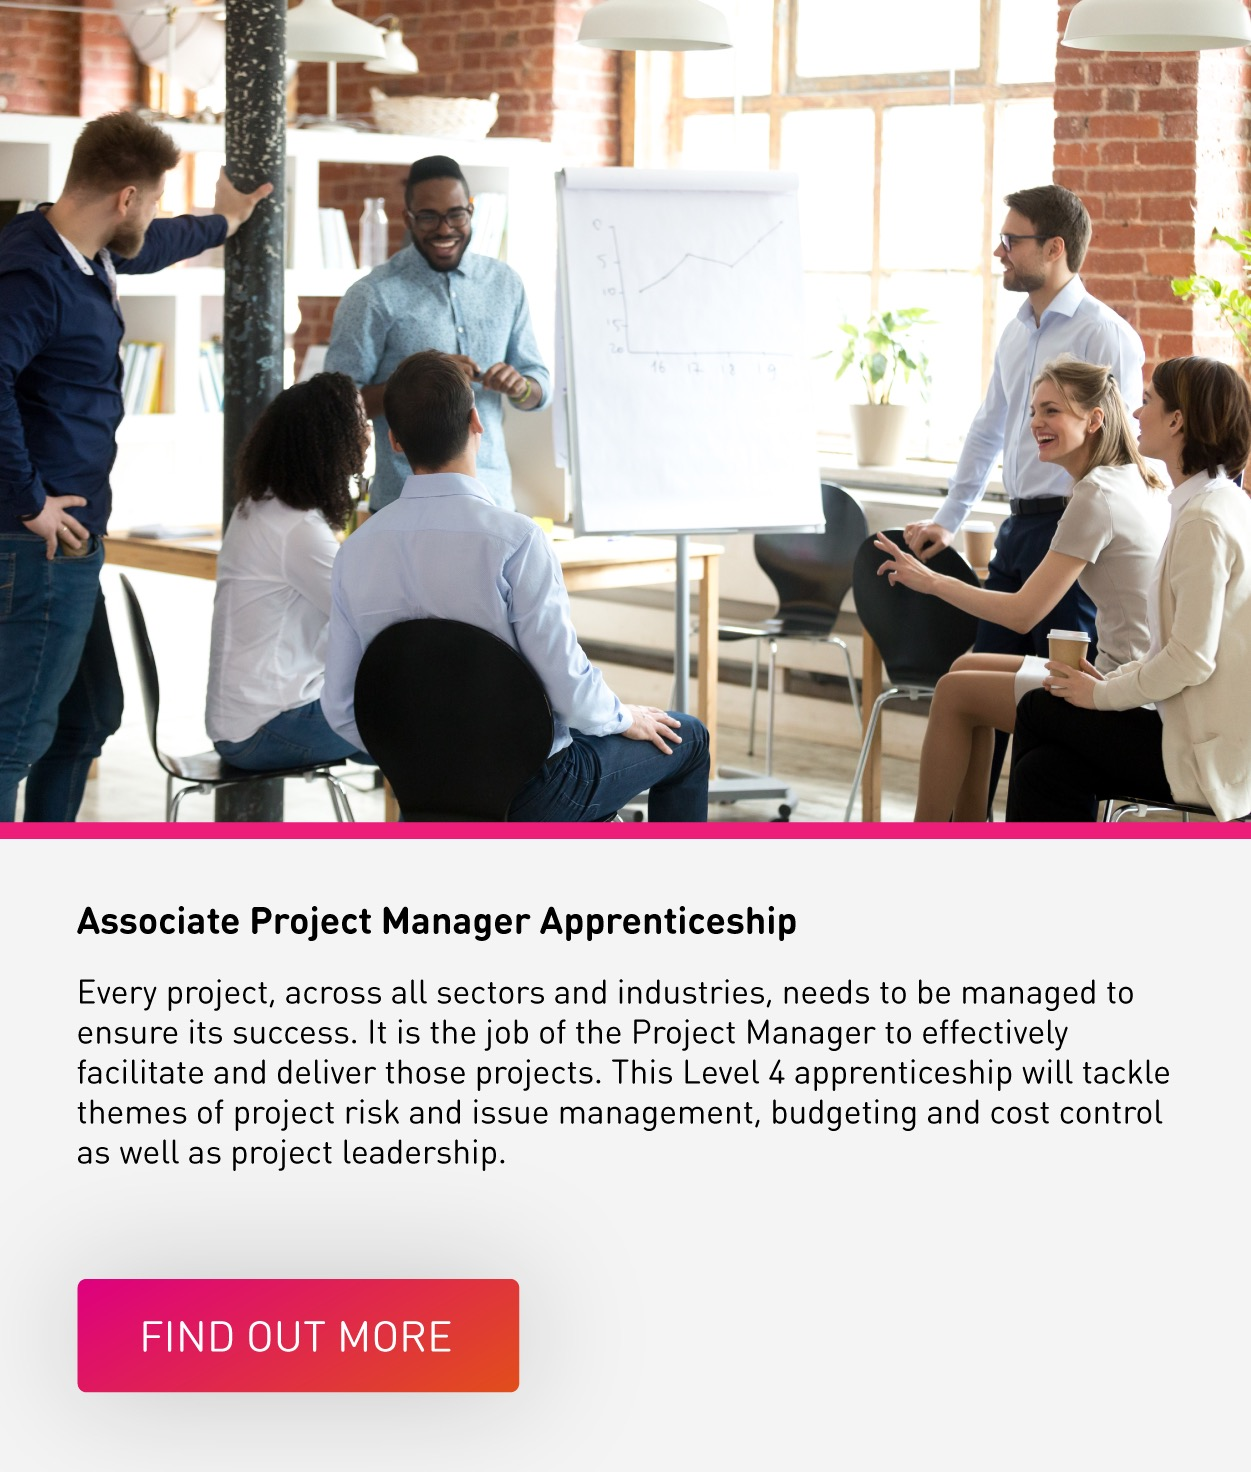 Associate Project Manager Apprenticeship